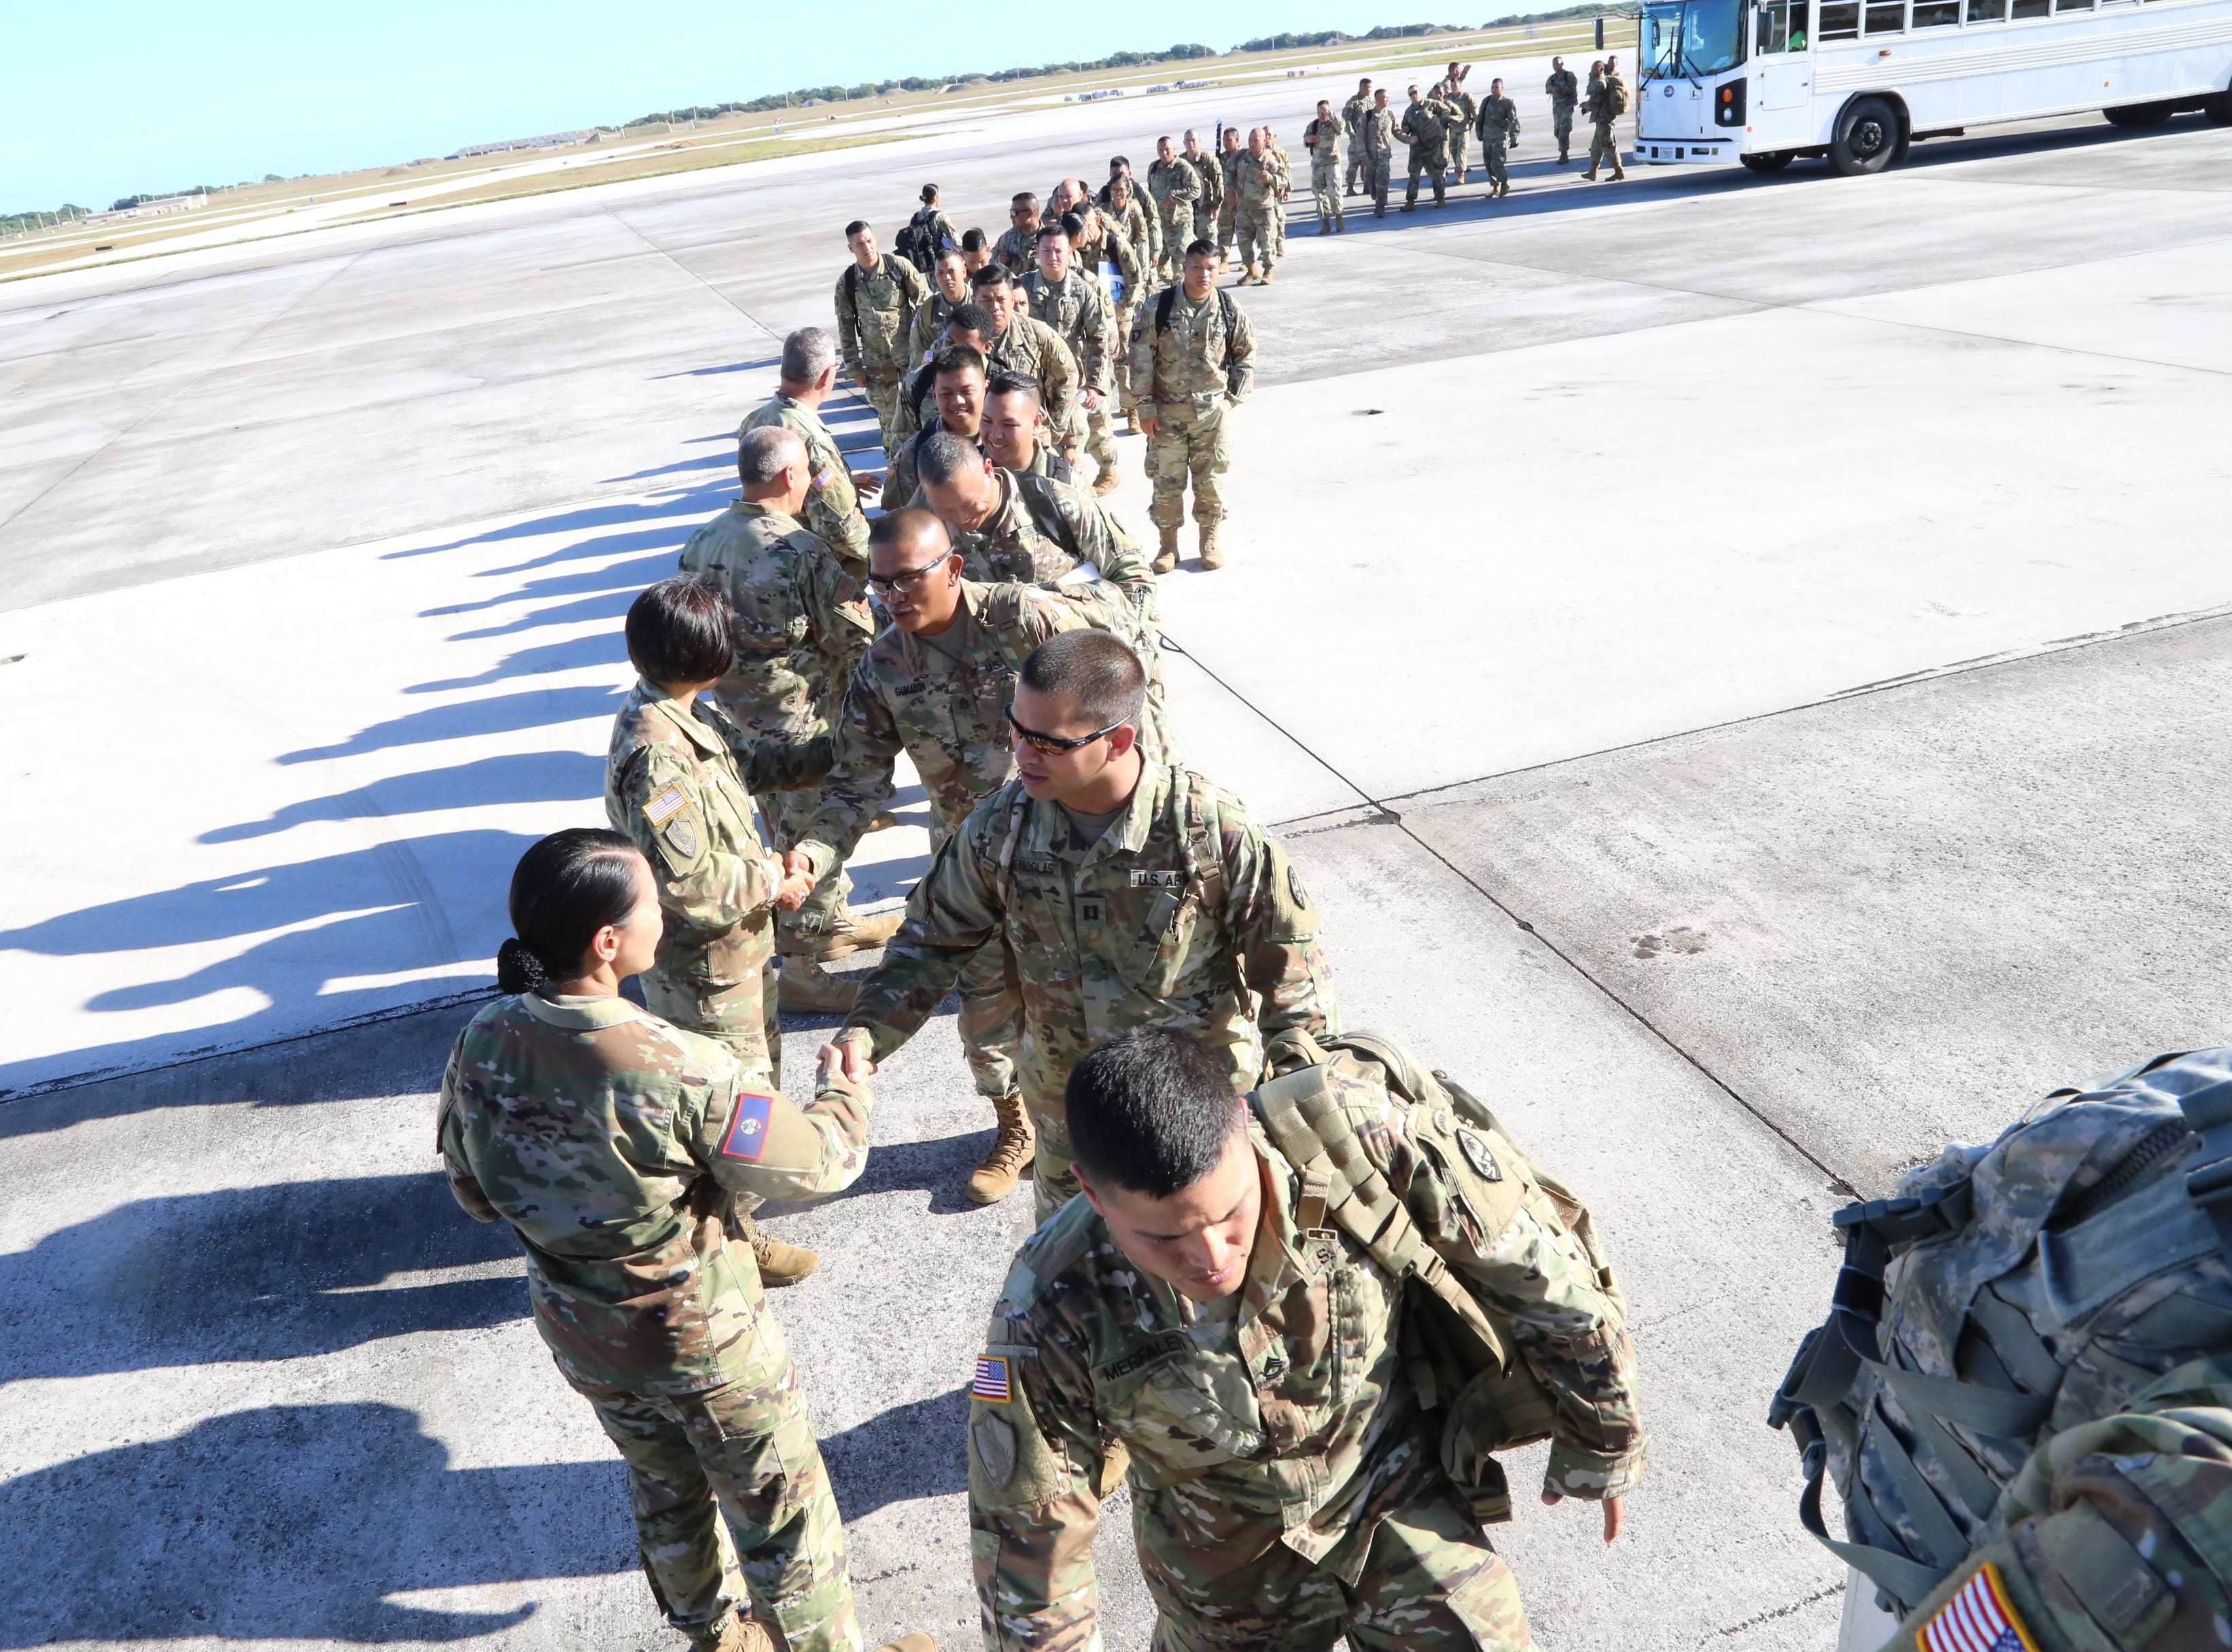 Maj. Gen. Esther Aguigui, The Adjutant General of the Guam National Guard, at left, and other leadership, bid soldiers farewell and safe travels as they boarded a plane on the flight line at Andersen Air Force Base, Yigo, Guam, May 13, 2019.